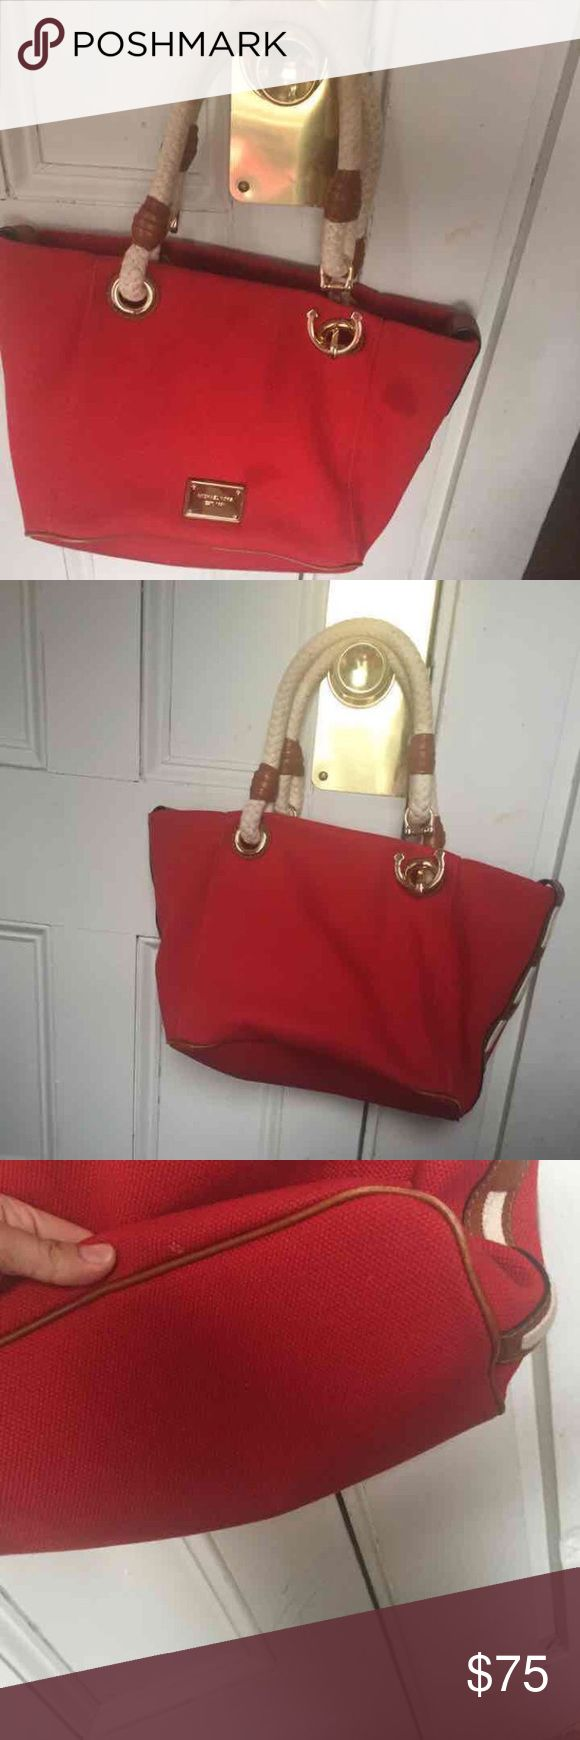 ⬇️Michael Kors Red handbag 👜 100% Authentic. Some small signs of wear. Smoke and pet free home. PRICE TO SELL. Available in Ⓜ️ercari for better price Michael Kors Bags Shoulder Bags